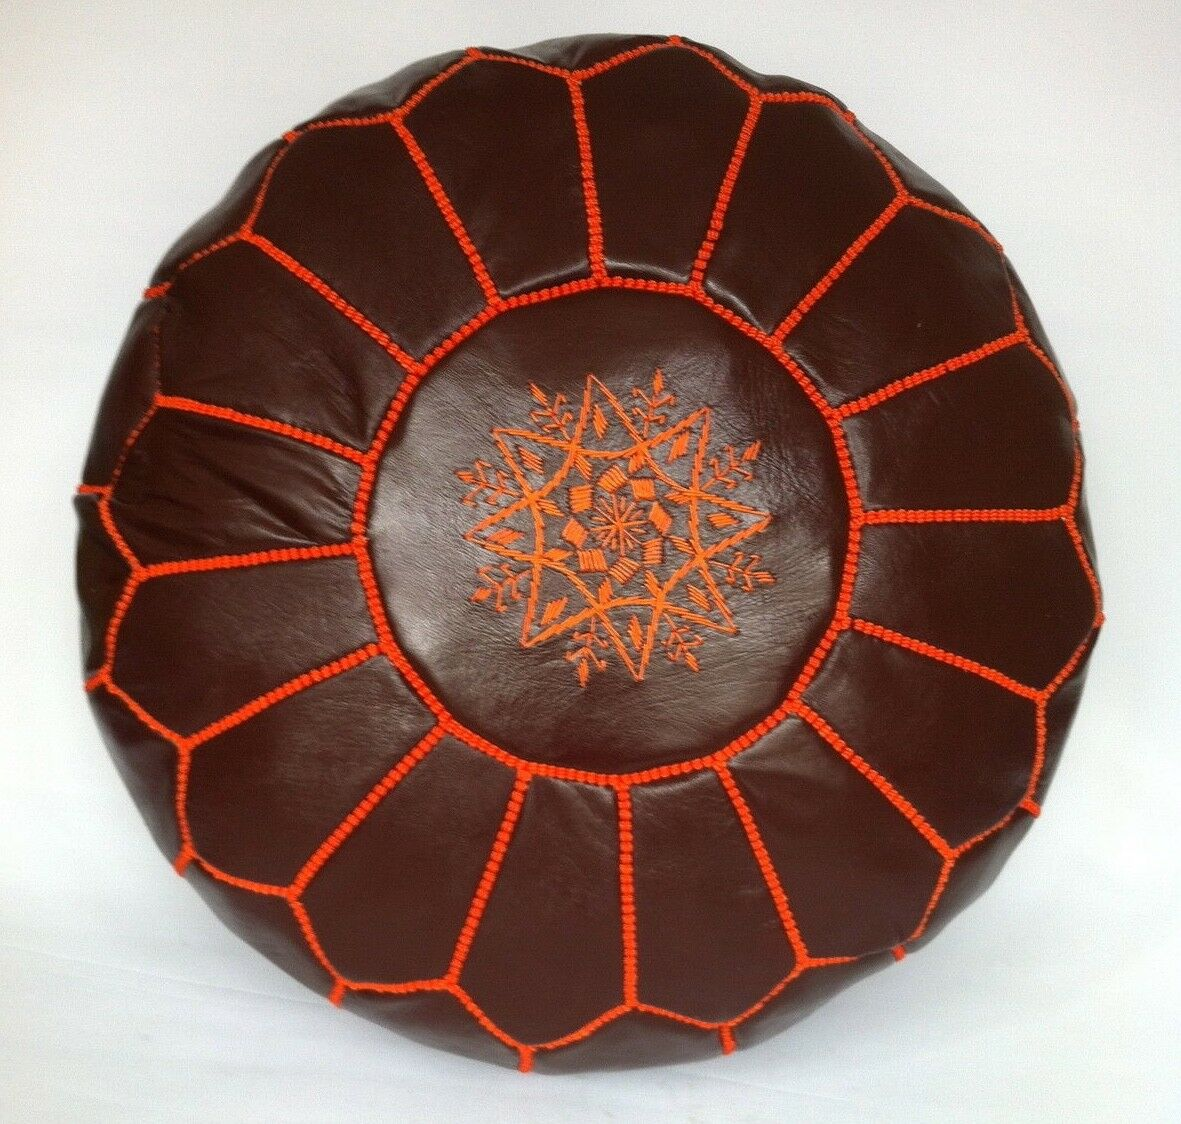 100% Leather Handcrafted MGoldccan Pouffe Dark Tan with Orange embroidery